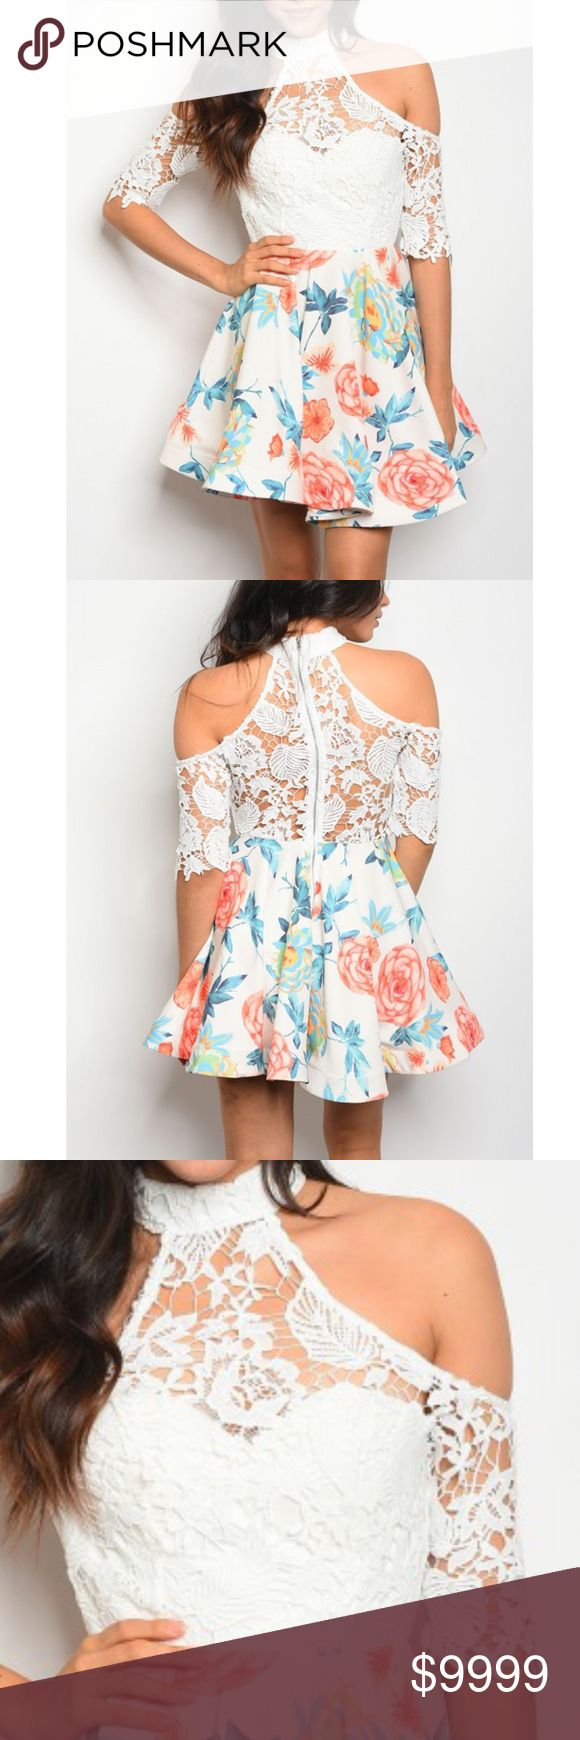 COMING: Ivory Floral Dress with Lace Detailed Top 3/4 sleeve a-line cut dress that features a floral print two toned pleated skirt and lace detailed top, with a mock neckline and cold shoulders. Fabric Content: 65% COTTON 32% POLYESTER 3% SPANDEX golden threads Dresses